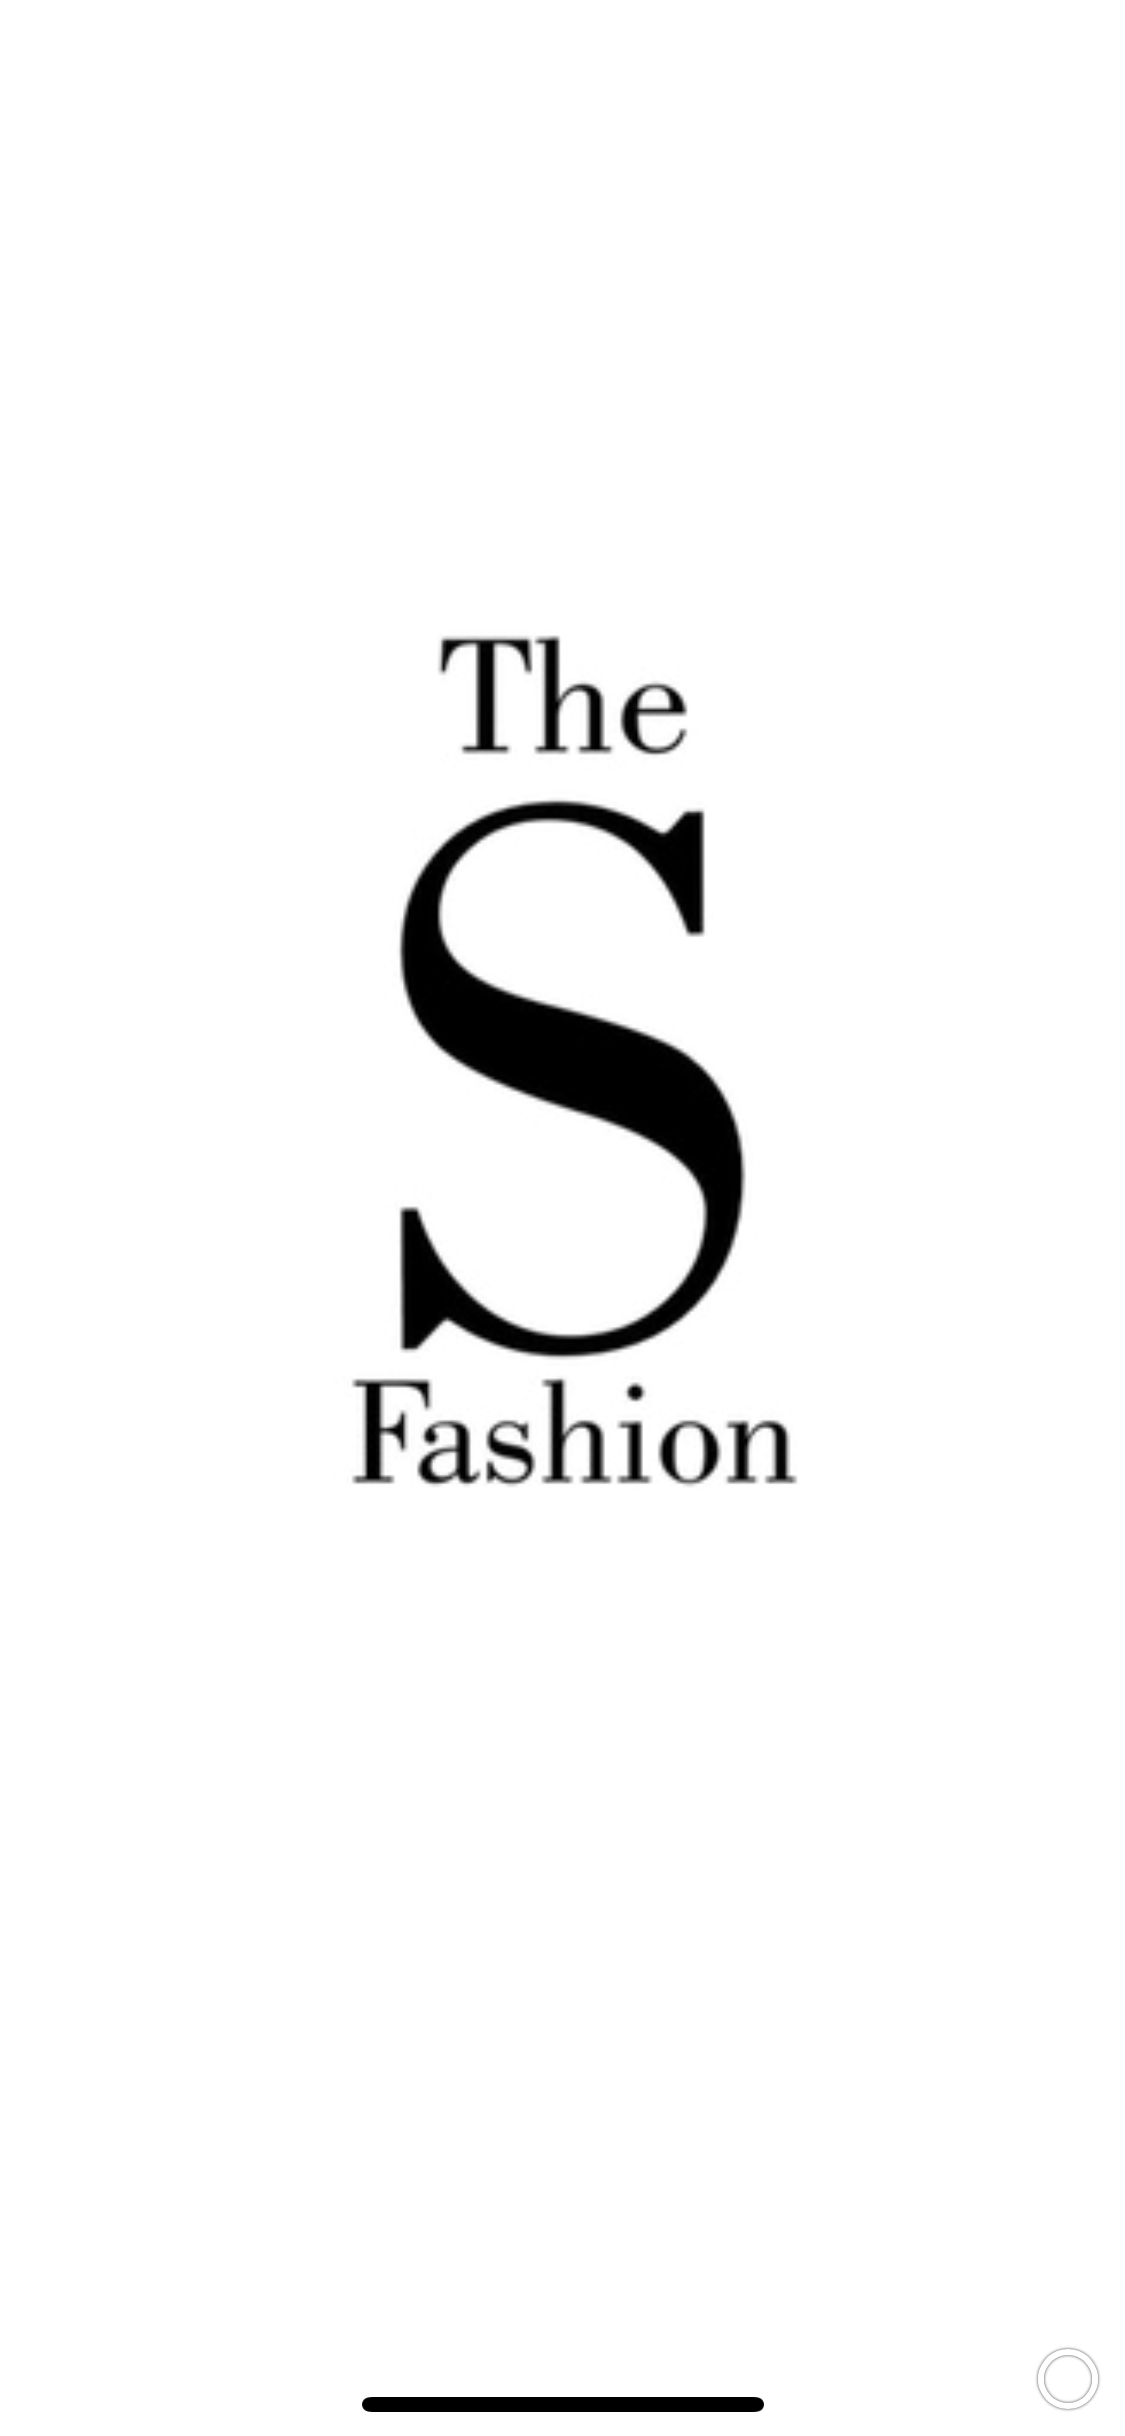 The S fashion